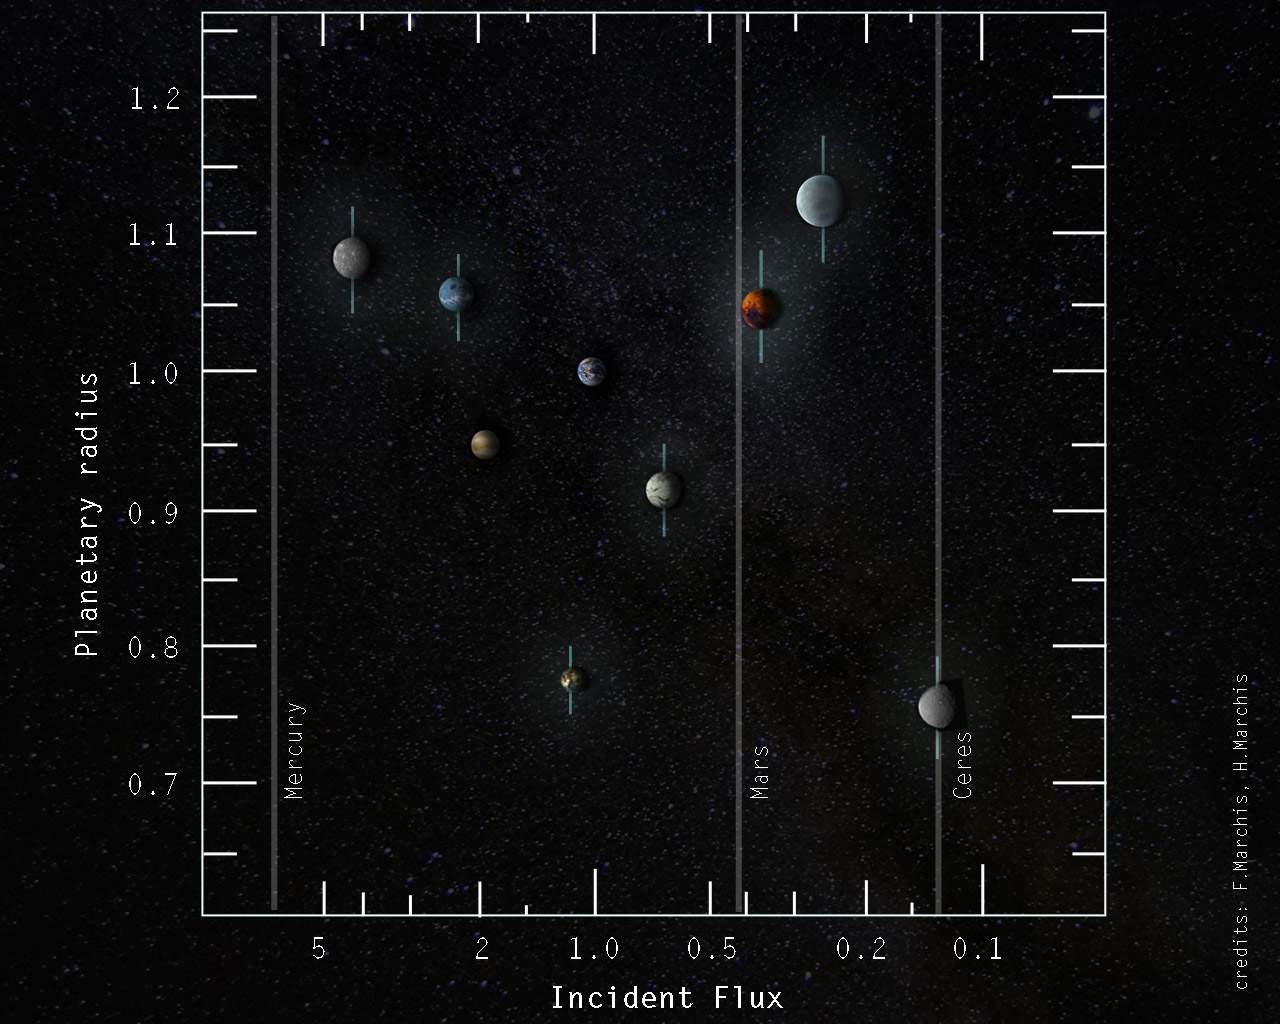 Incident flux received by the exoplanets of Trappist-1 and their radius. For comparison the incident flux of Mercury, Mars, Ceres, as well as the location of Venus and Mars is added . Trappist-1d receives the same amount of than Earth (credit: F. Marchis & H. Marchis)